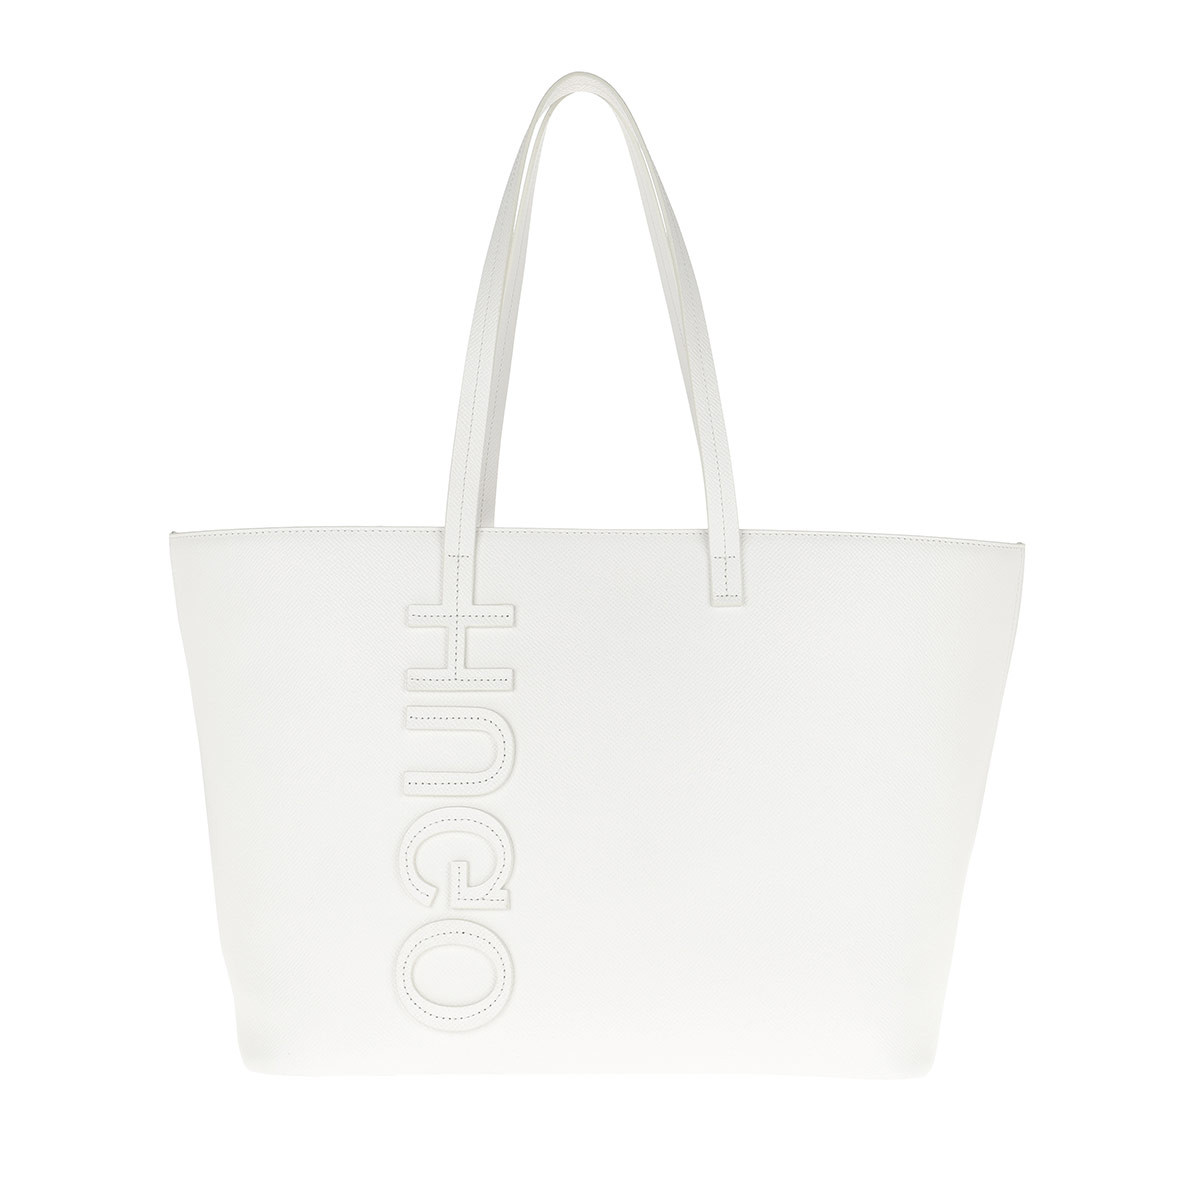 Hugo Shopper - Chelsea Shopper White - in weiß - für Damen